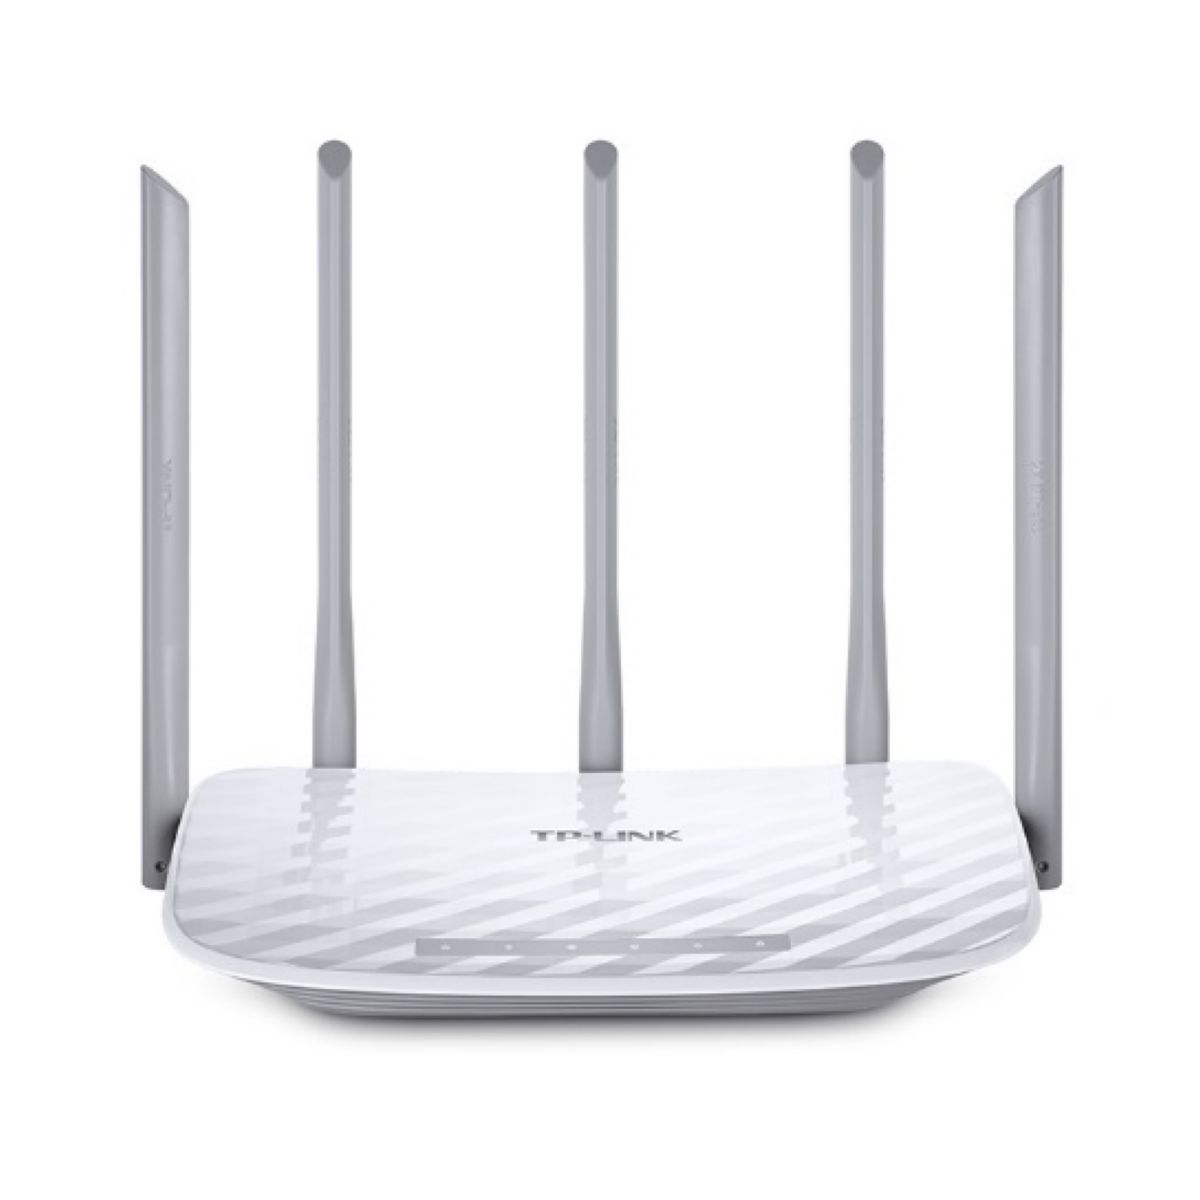 Router Tpl Ac1350 W/db Archer C60